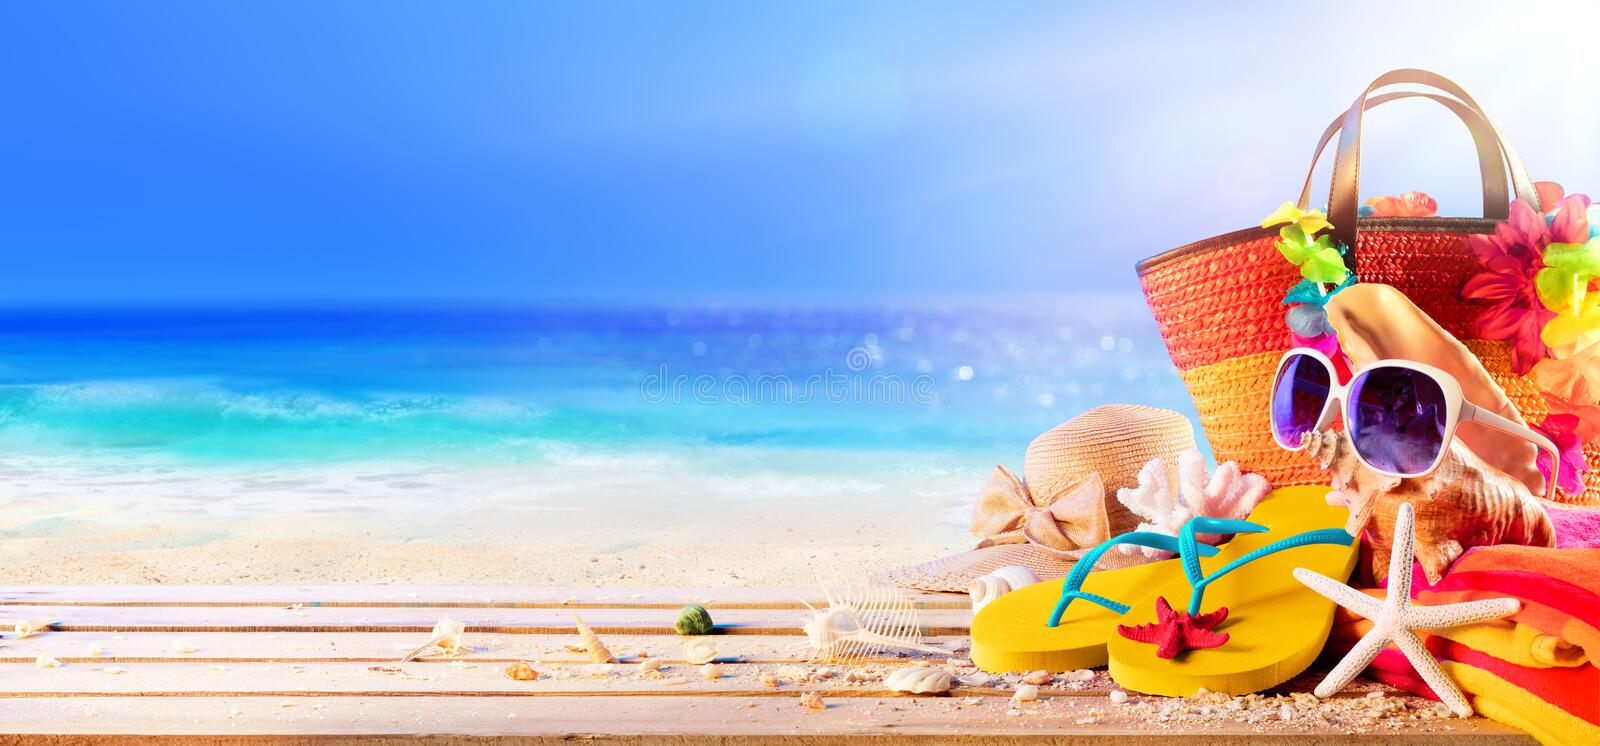 Beach Accessories And Shells On Deck In Sunny Seashore. Summer Holidays royalty free stock images